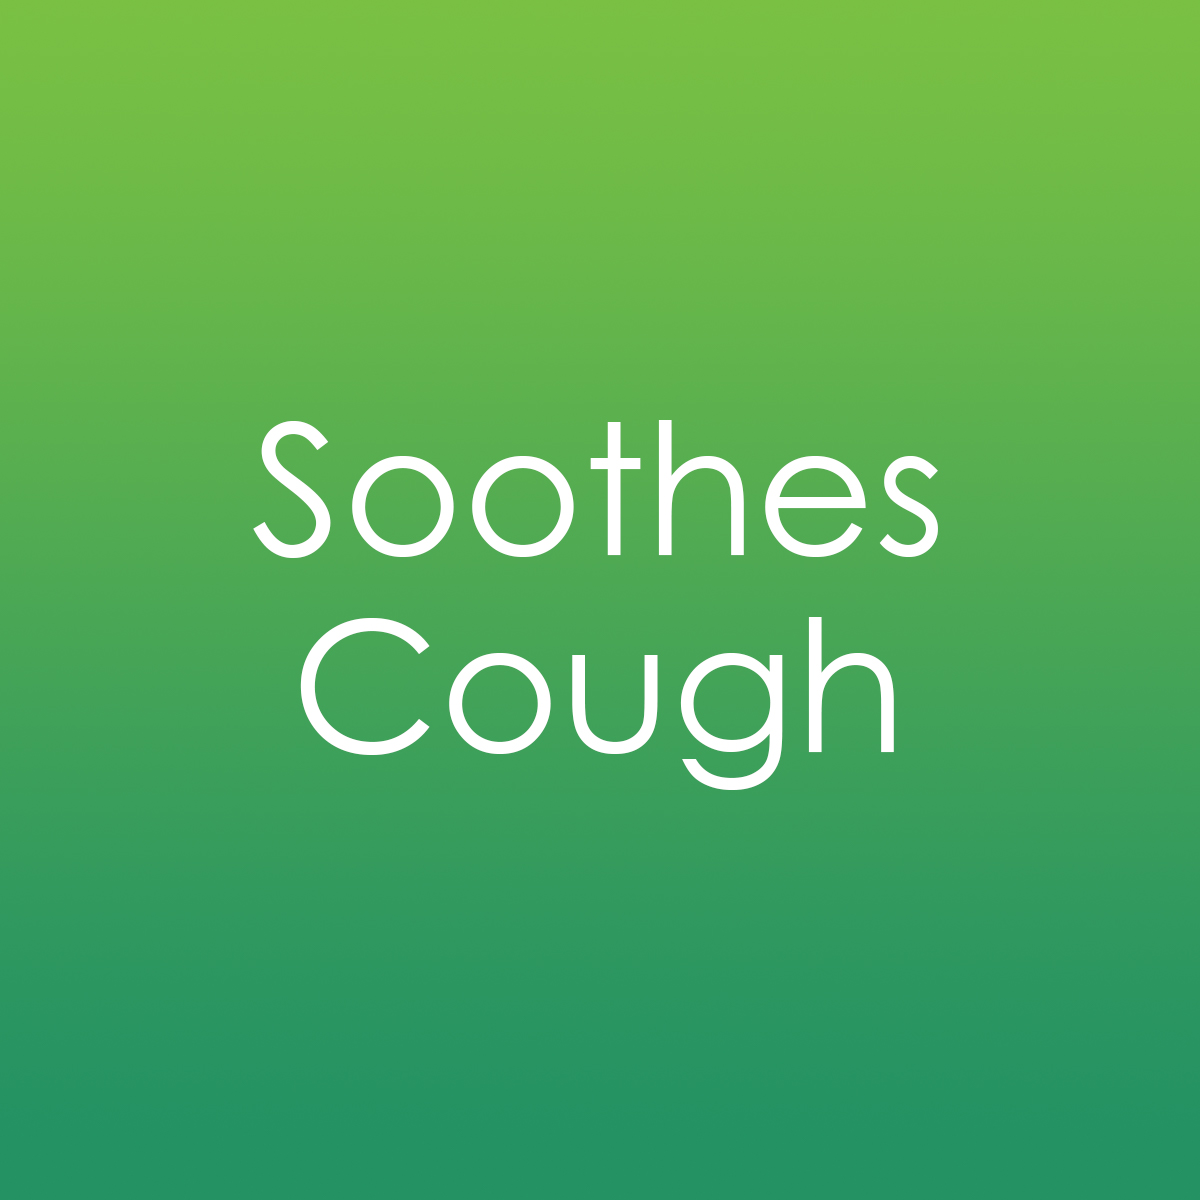 Soothes Cough